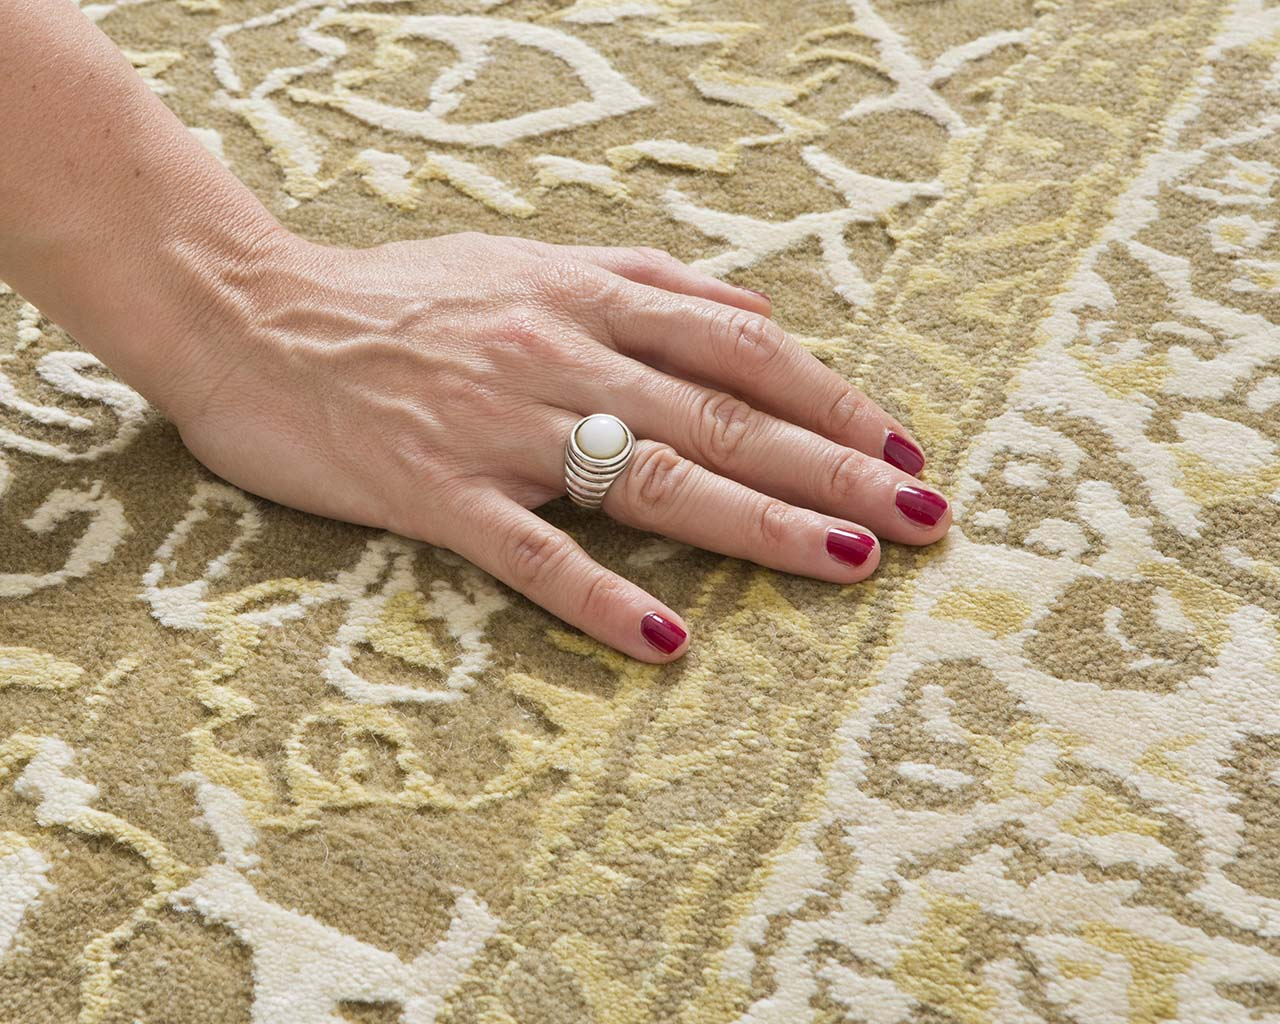 wheat tufted hand with nail polish colorful rugs